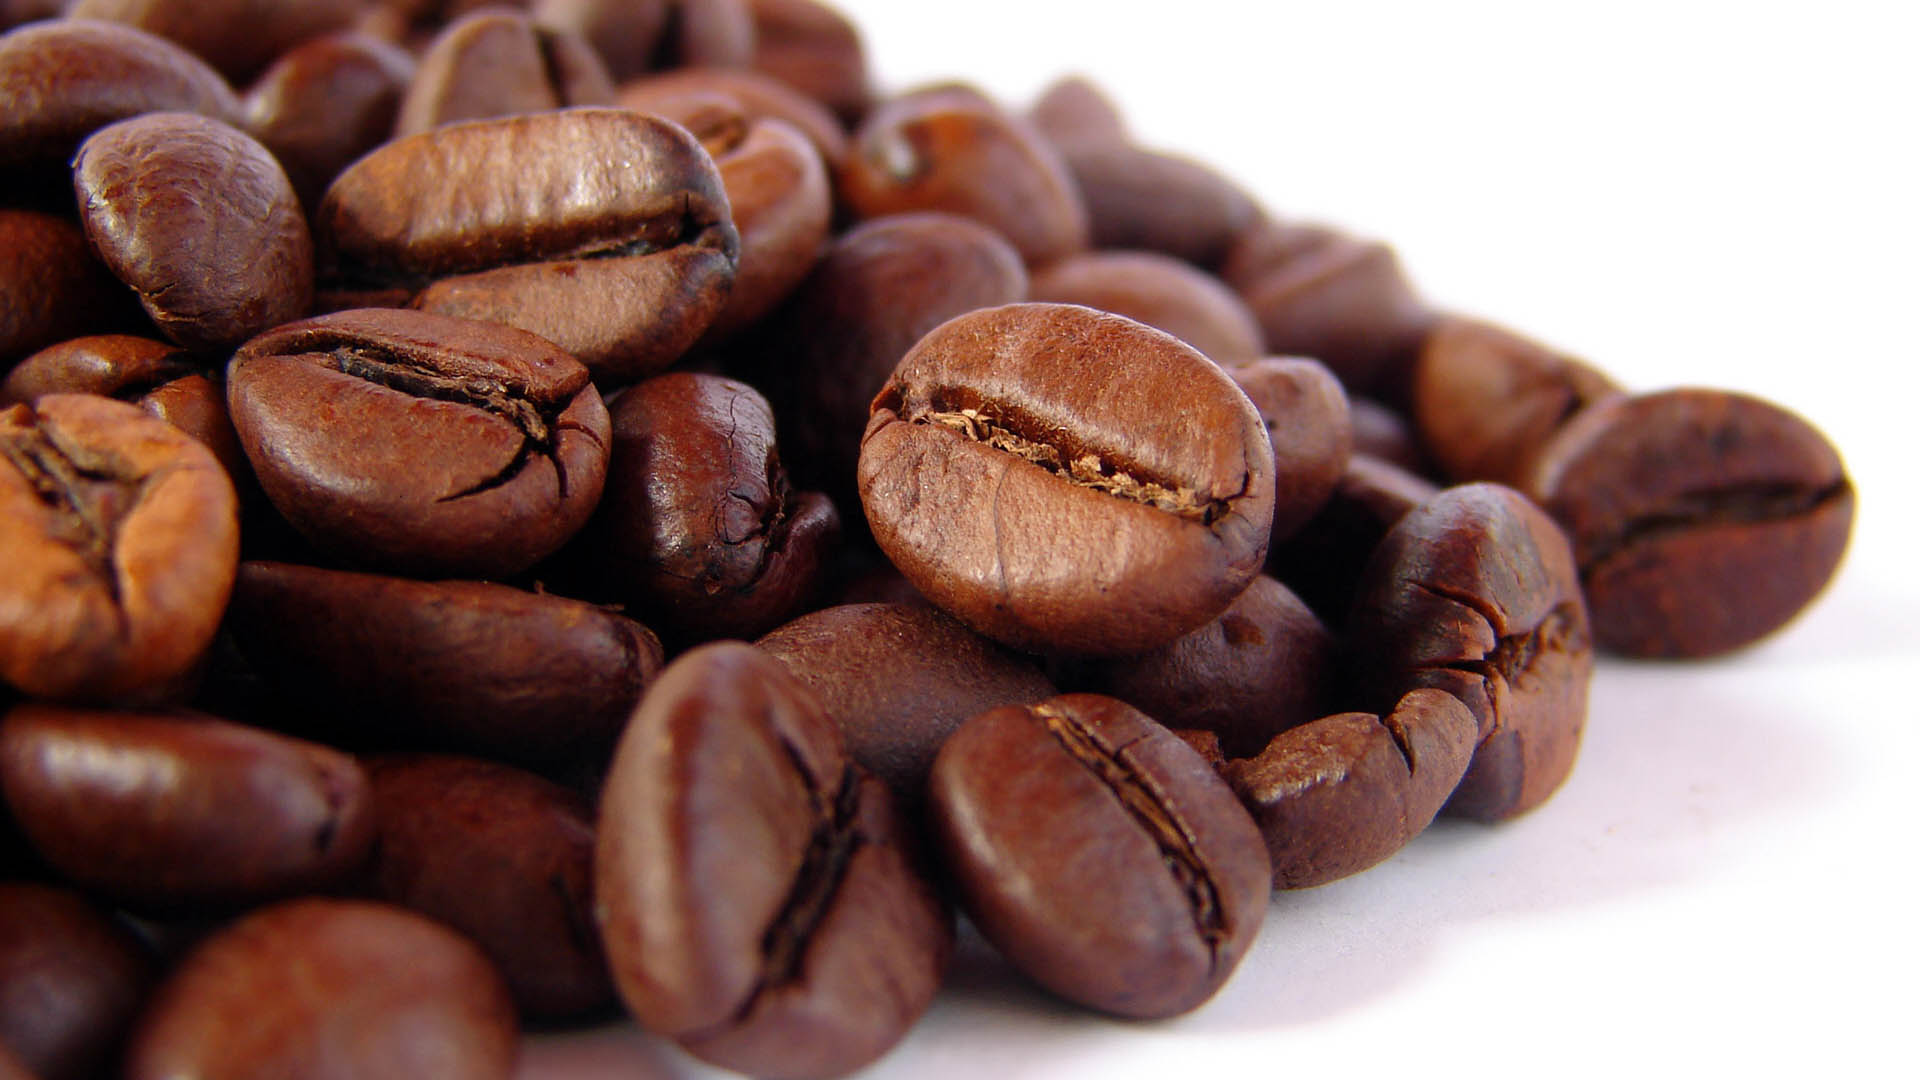 Coffee Beans Wallpaper HD 46821